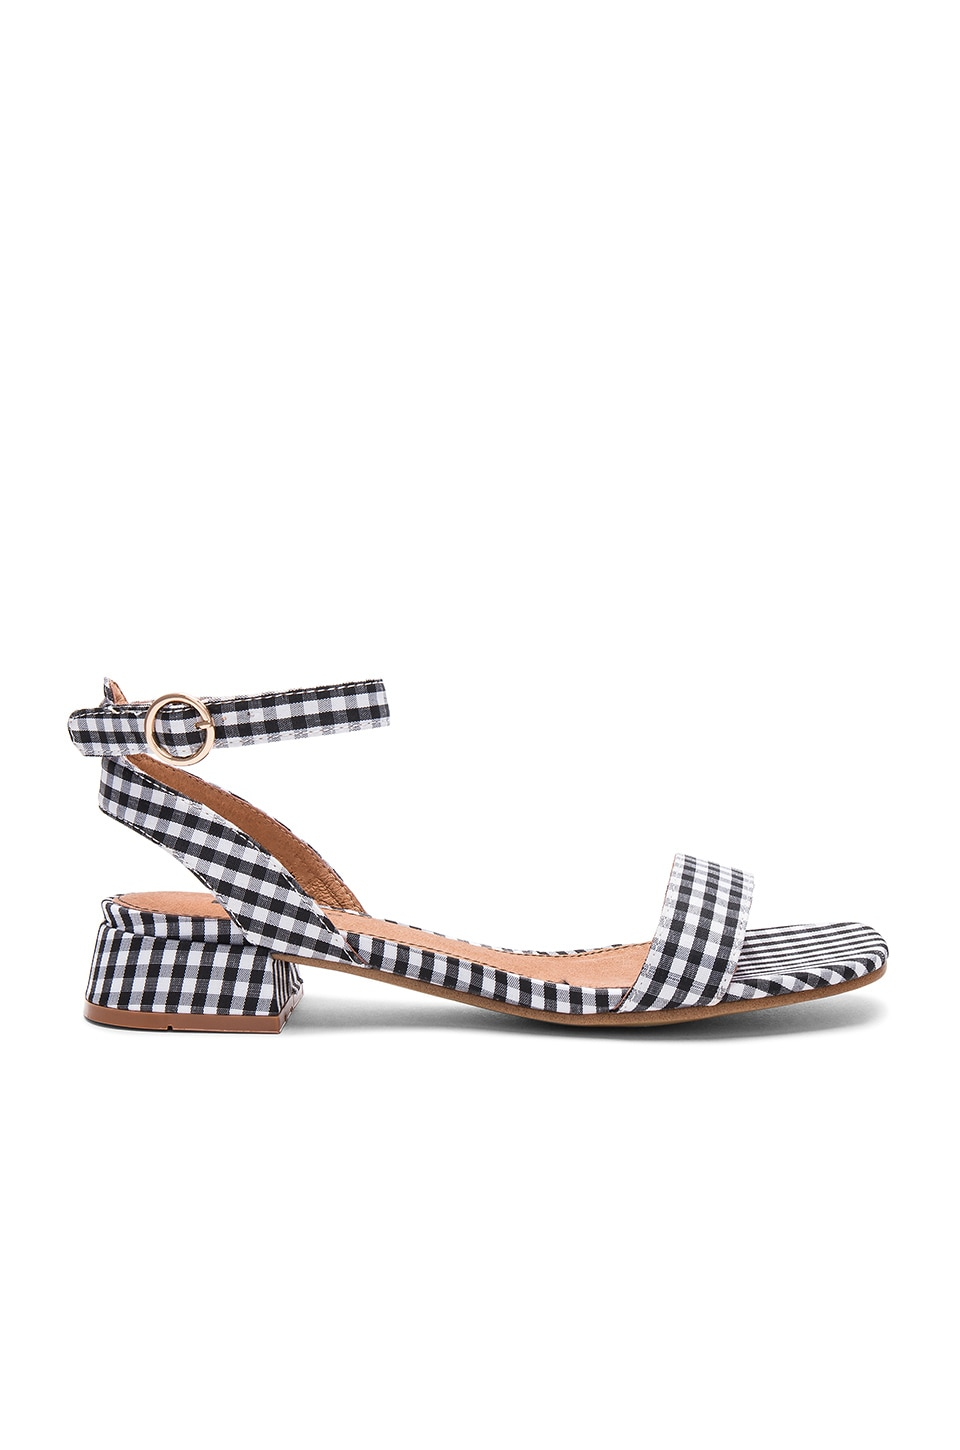 Matiko Raquela Sandal in Black & White Gingham